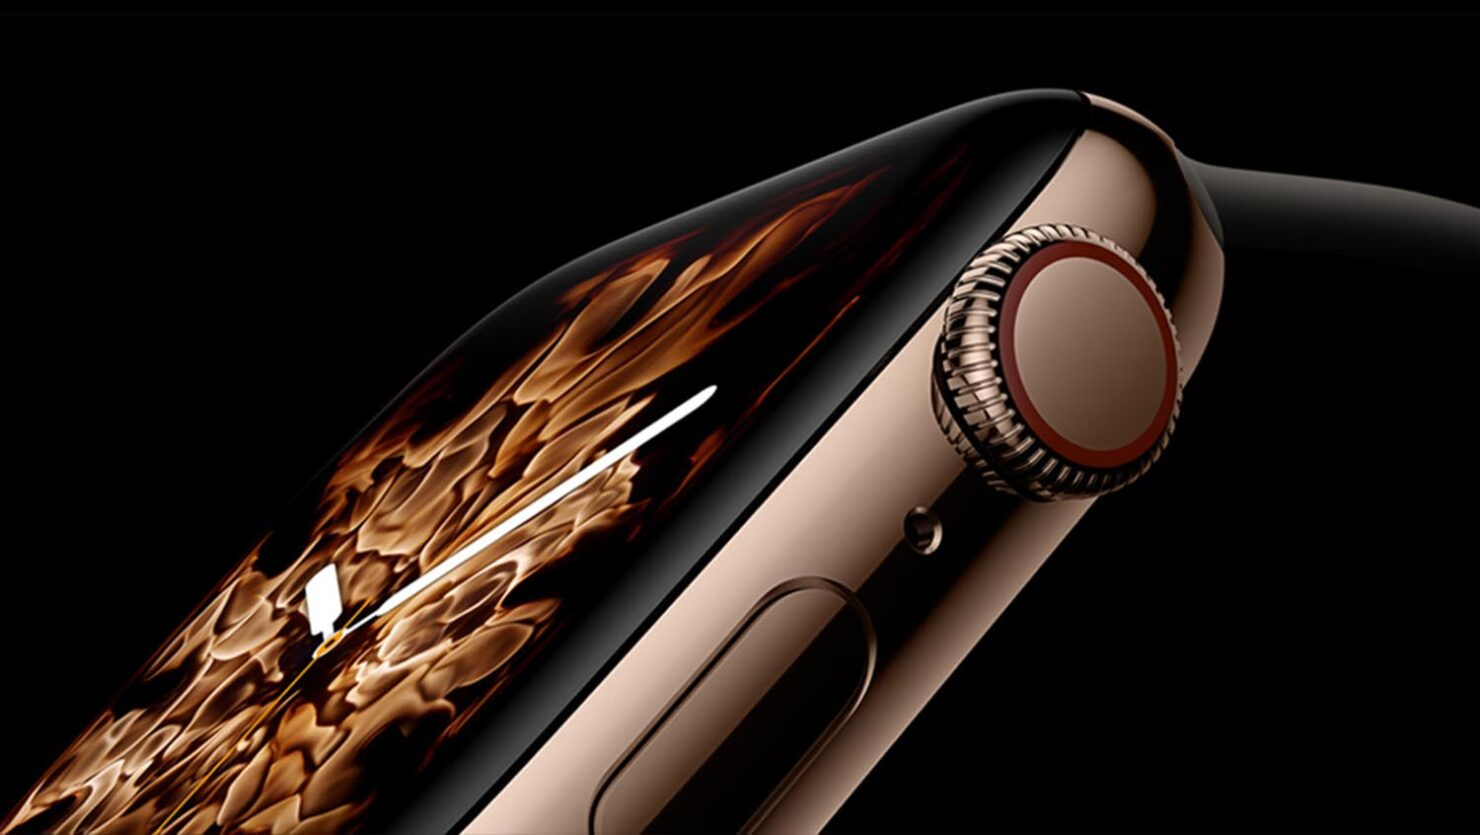 Apple Watch models continue their undefeated run in 2018